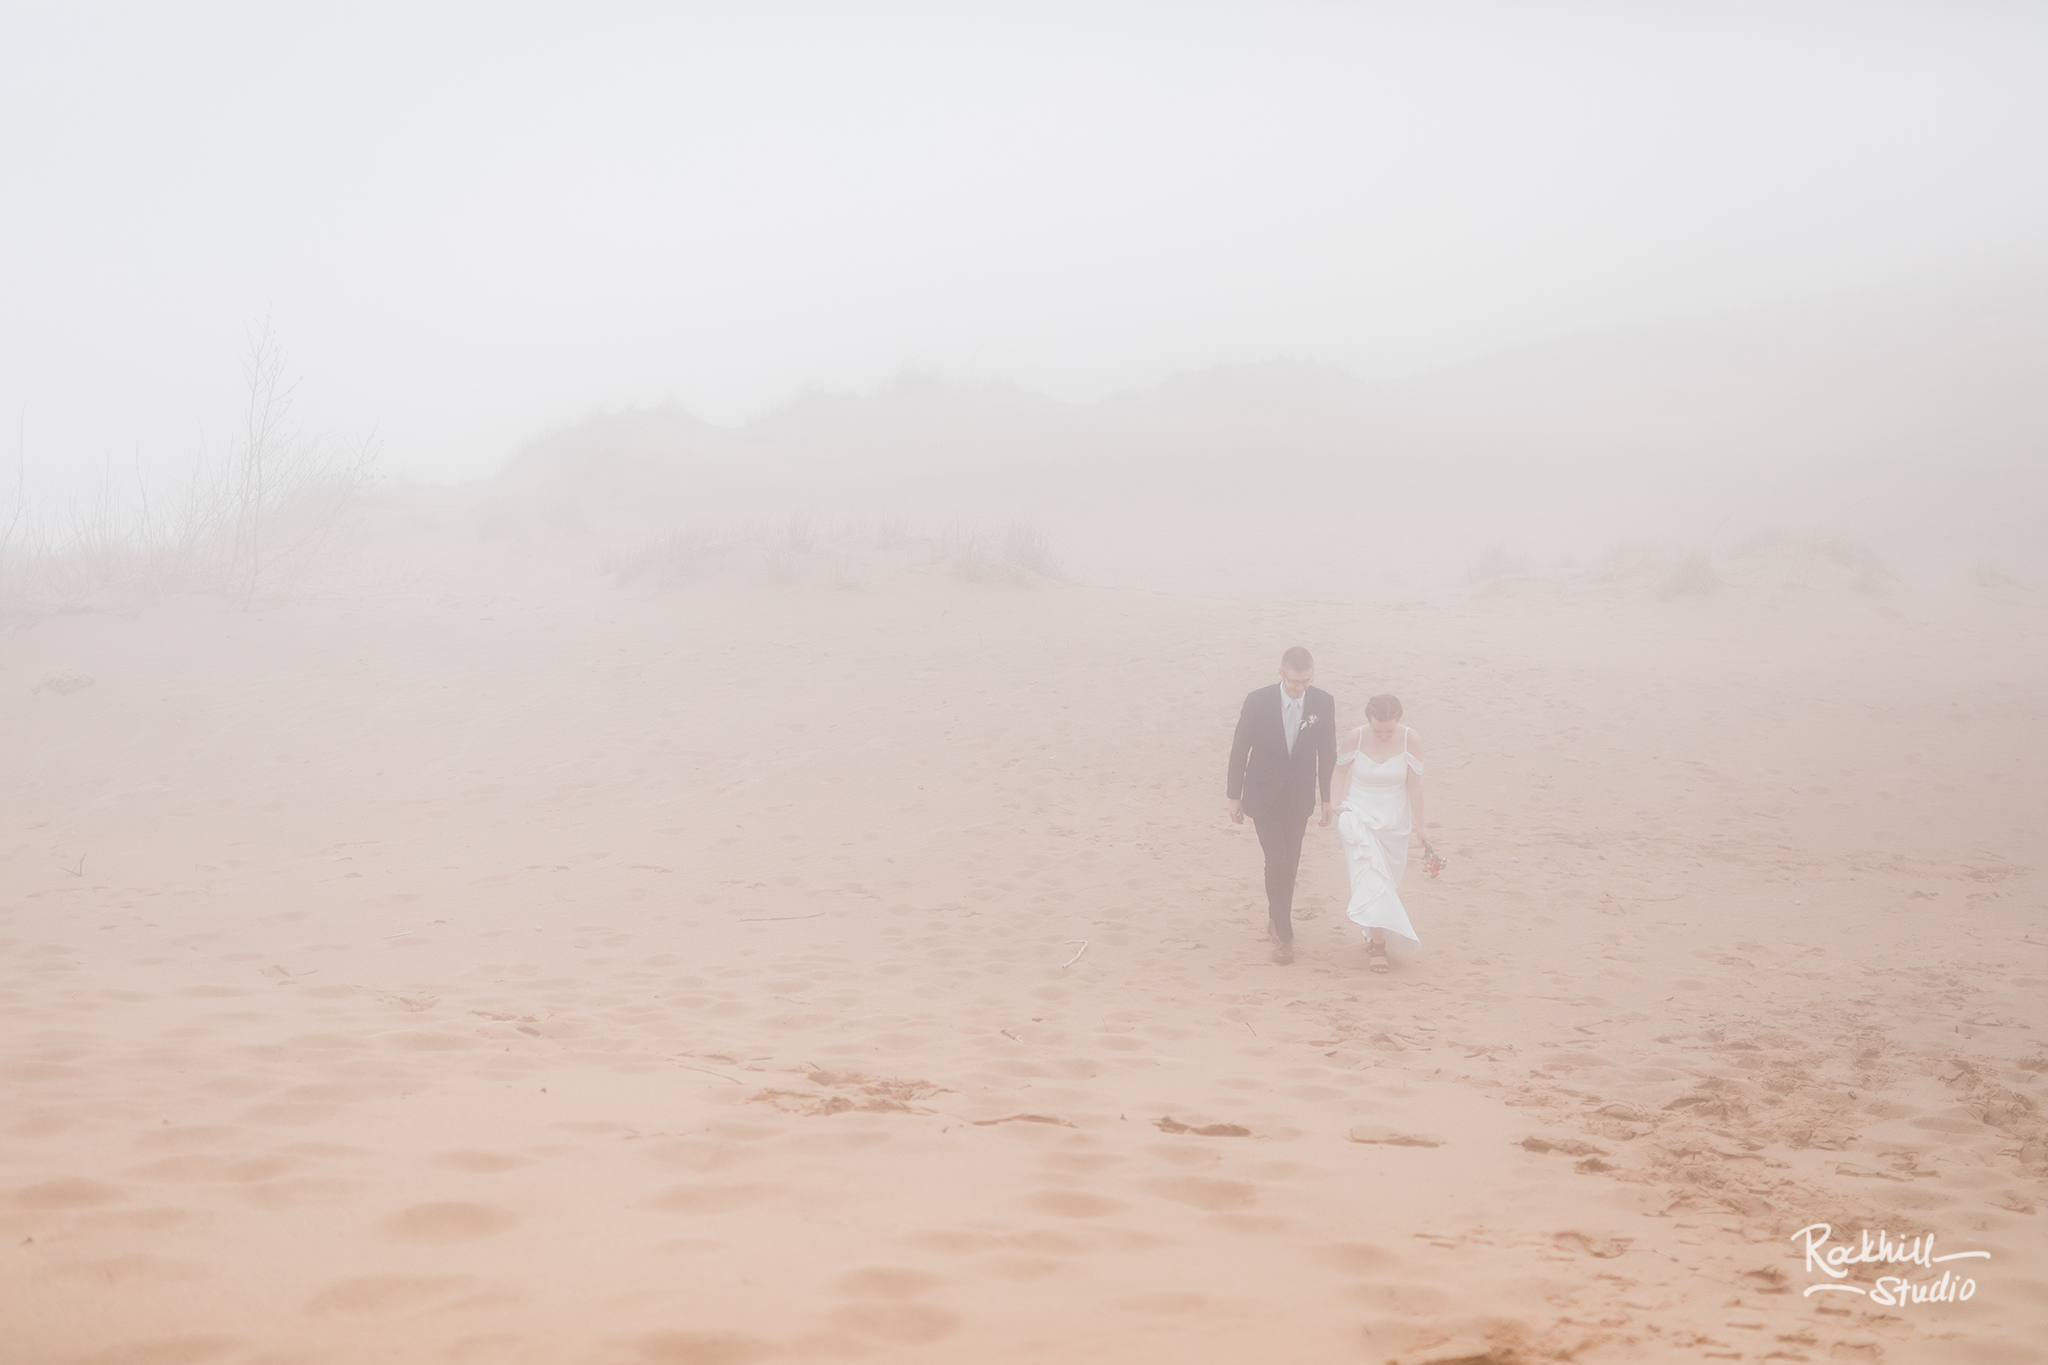 Traverse City Wedding, Sleeping Bear Dunes, beach destination wedding, rockhill studio